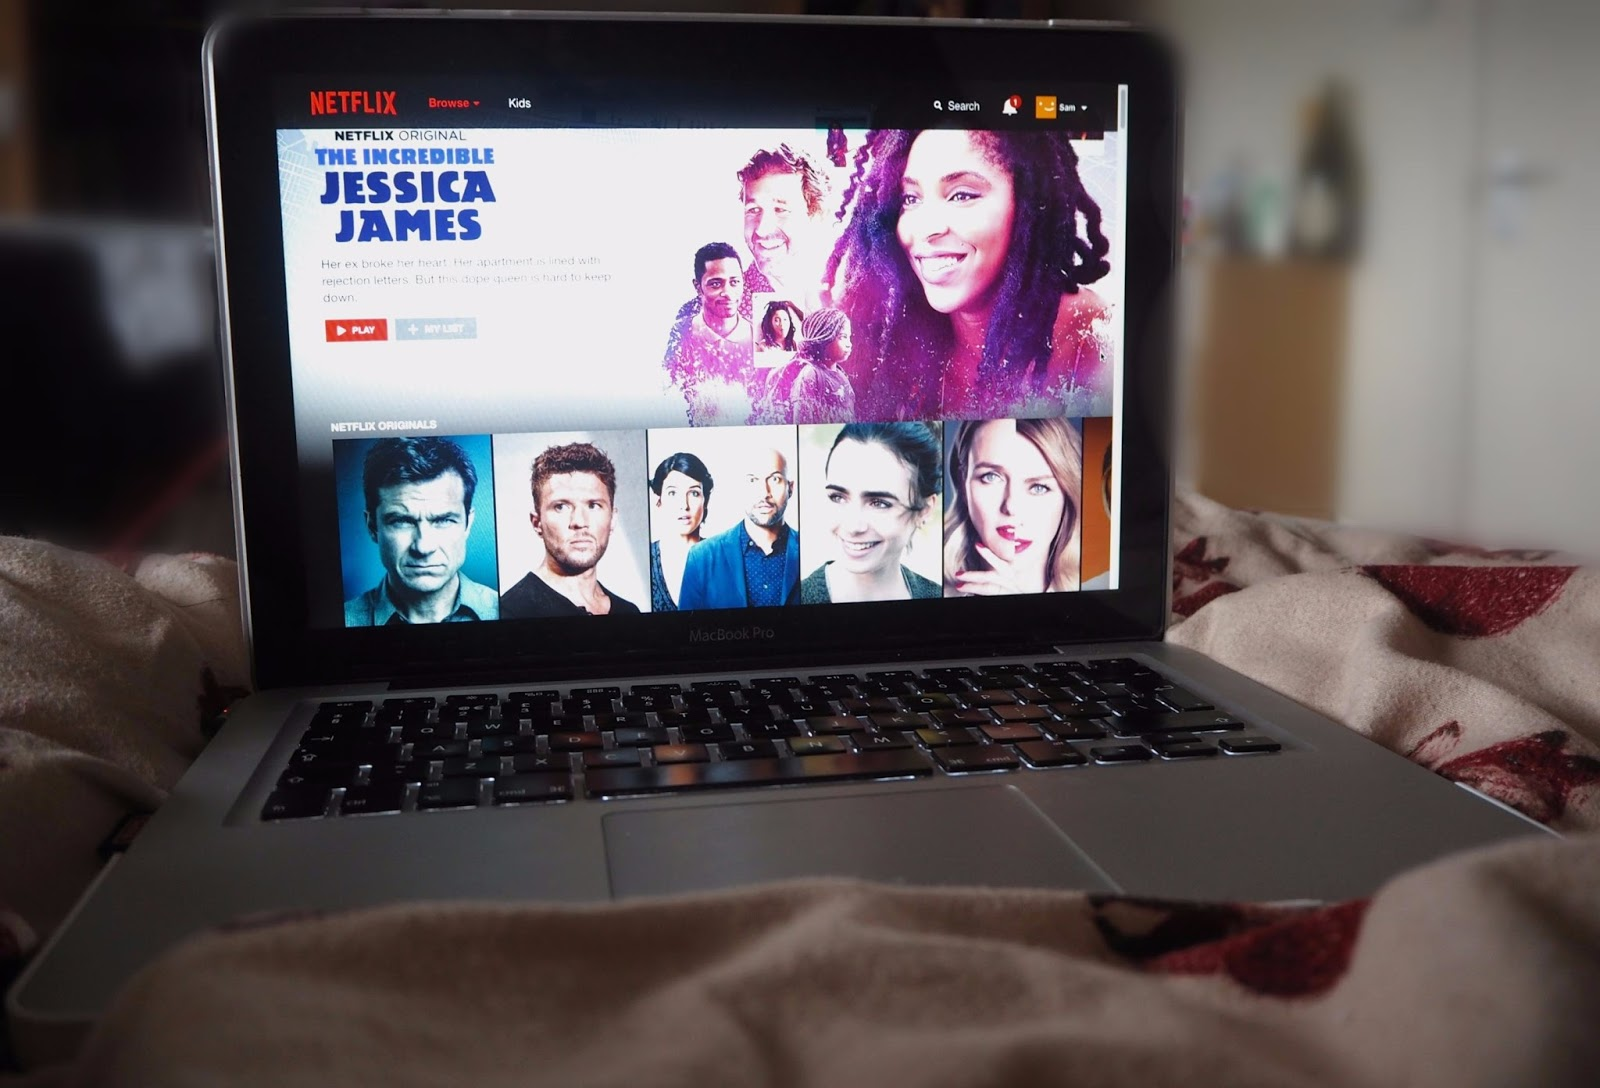 Laptop with Netflix on